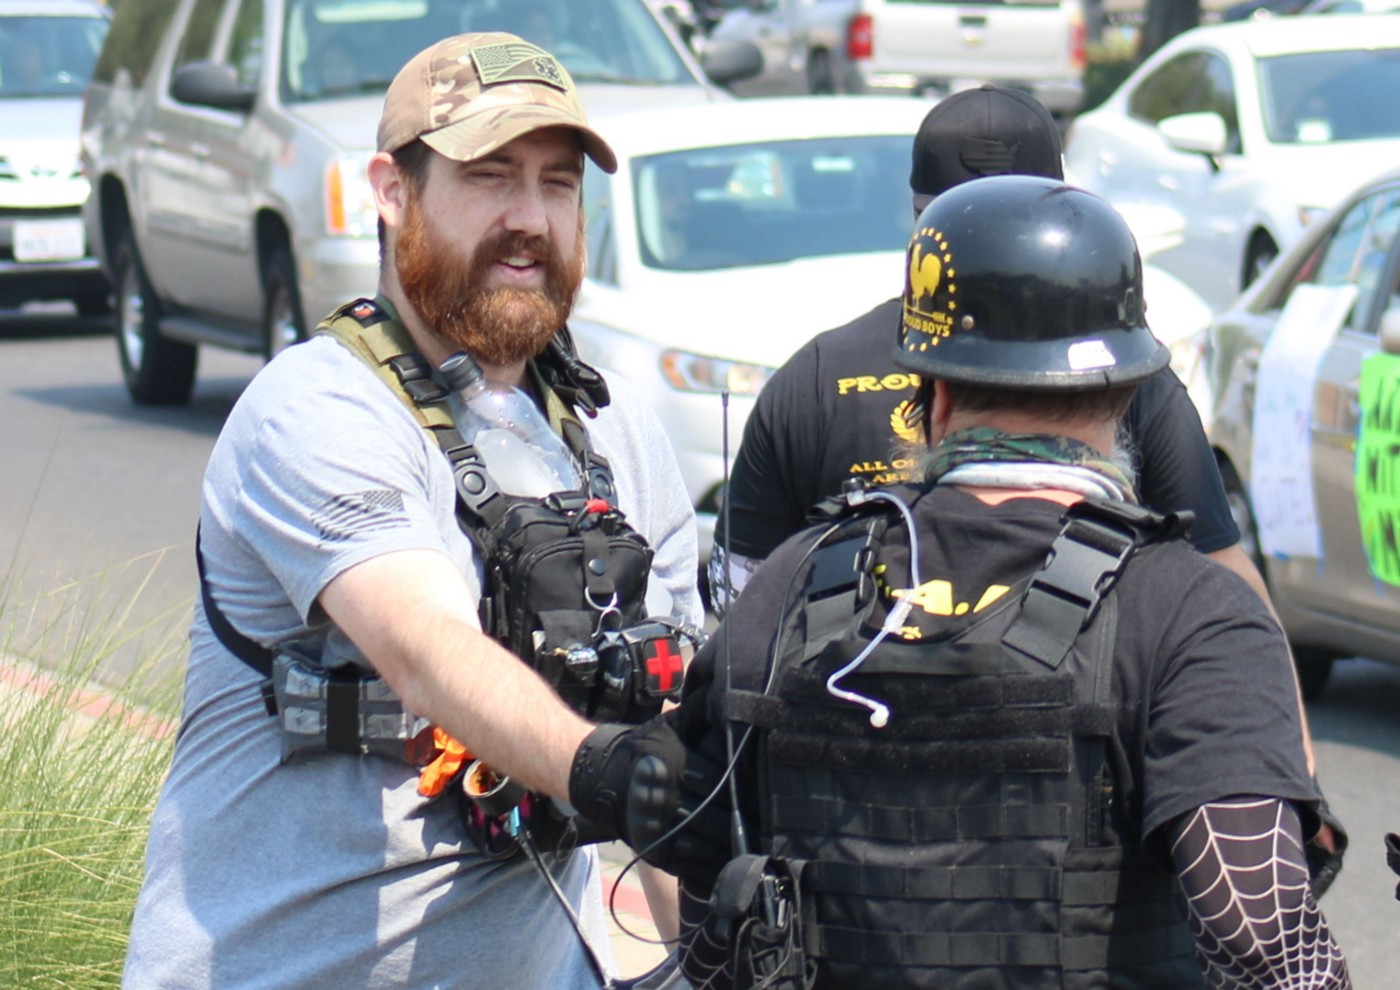 'You know they don't care about you. You're a cuck,' the man with the red beard accused Sabine. Photo by Sabine Alexander